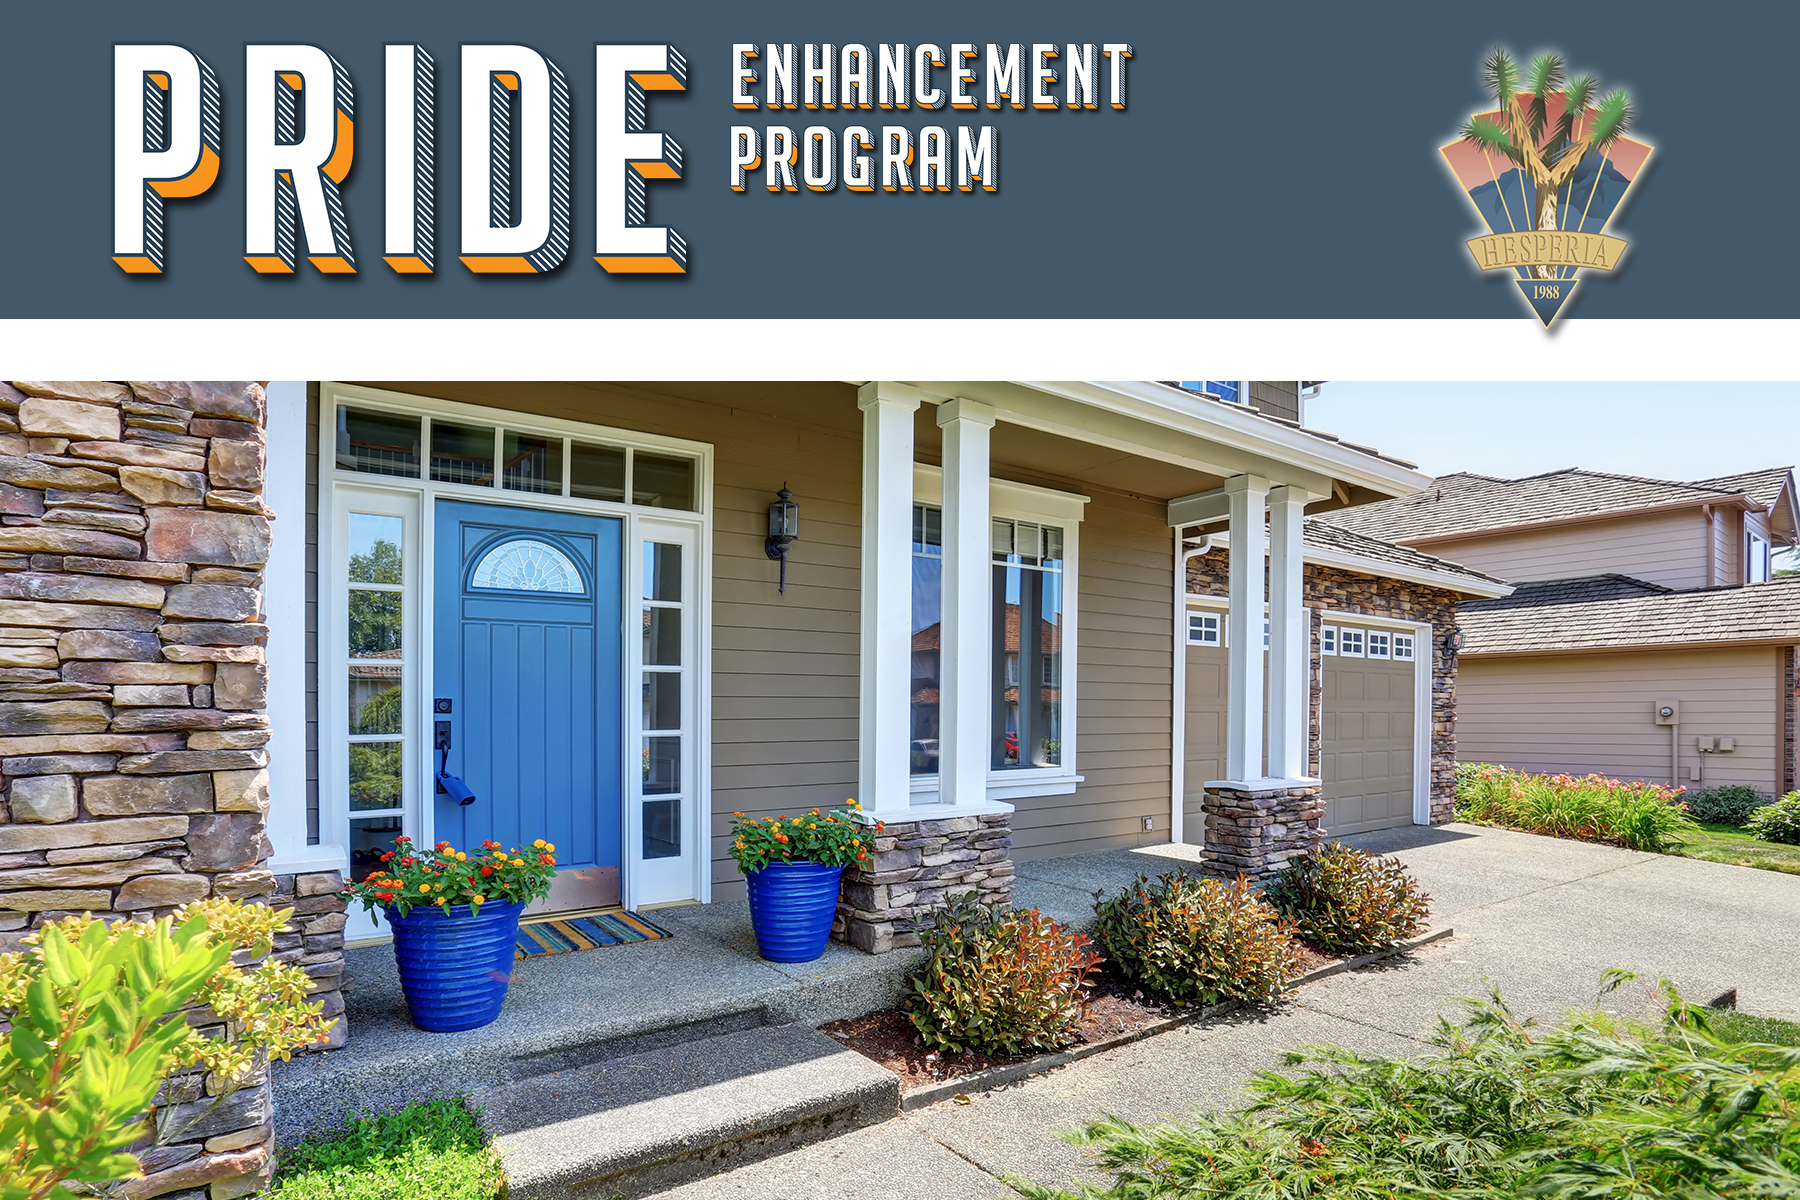 Pride Enhancement Program Graphic